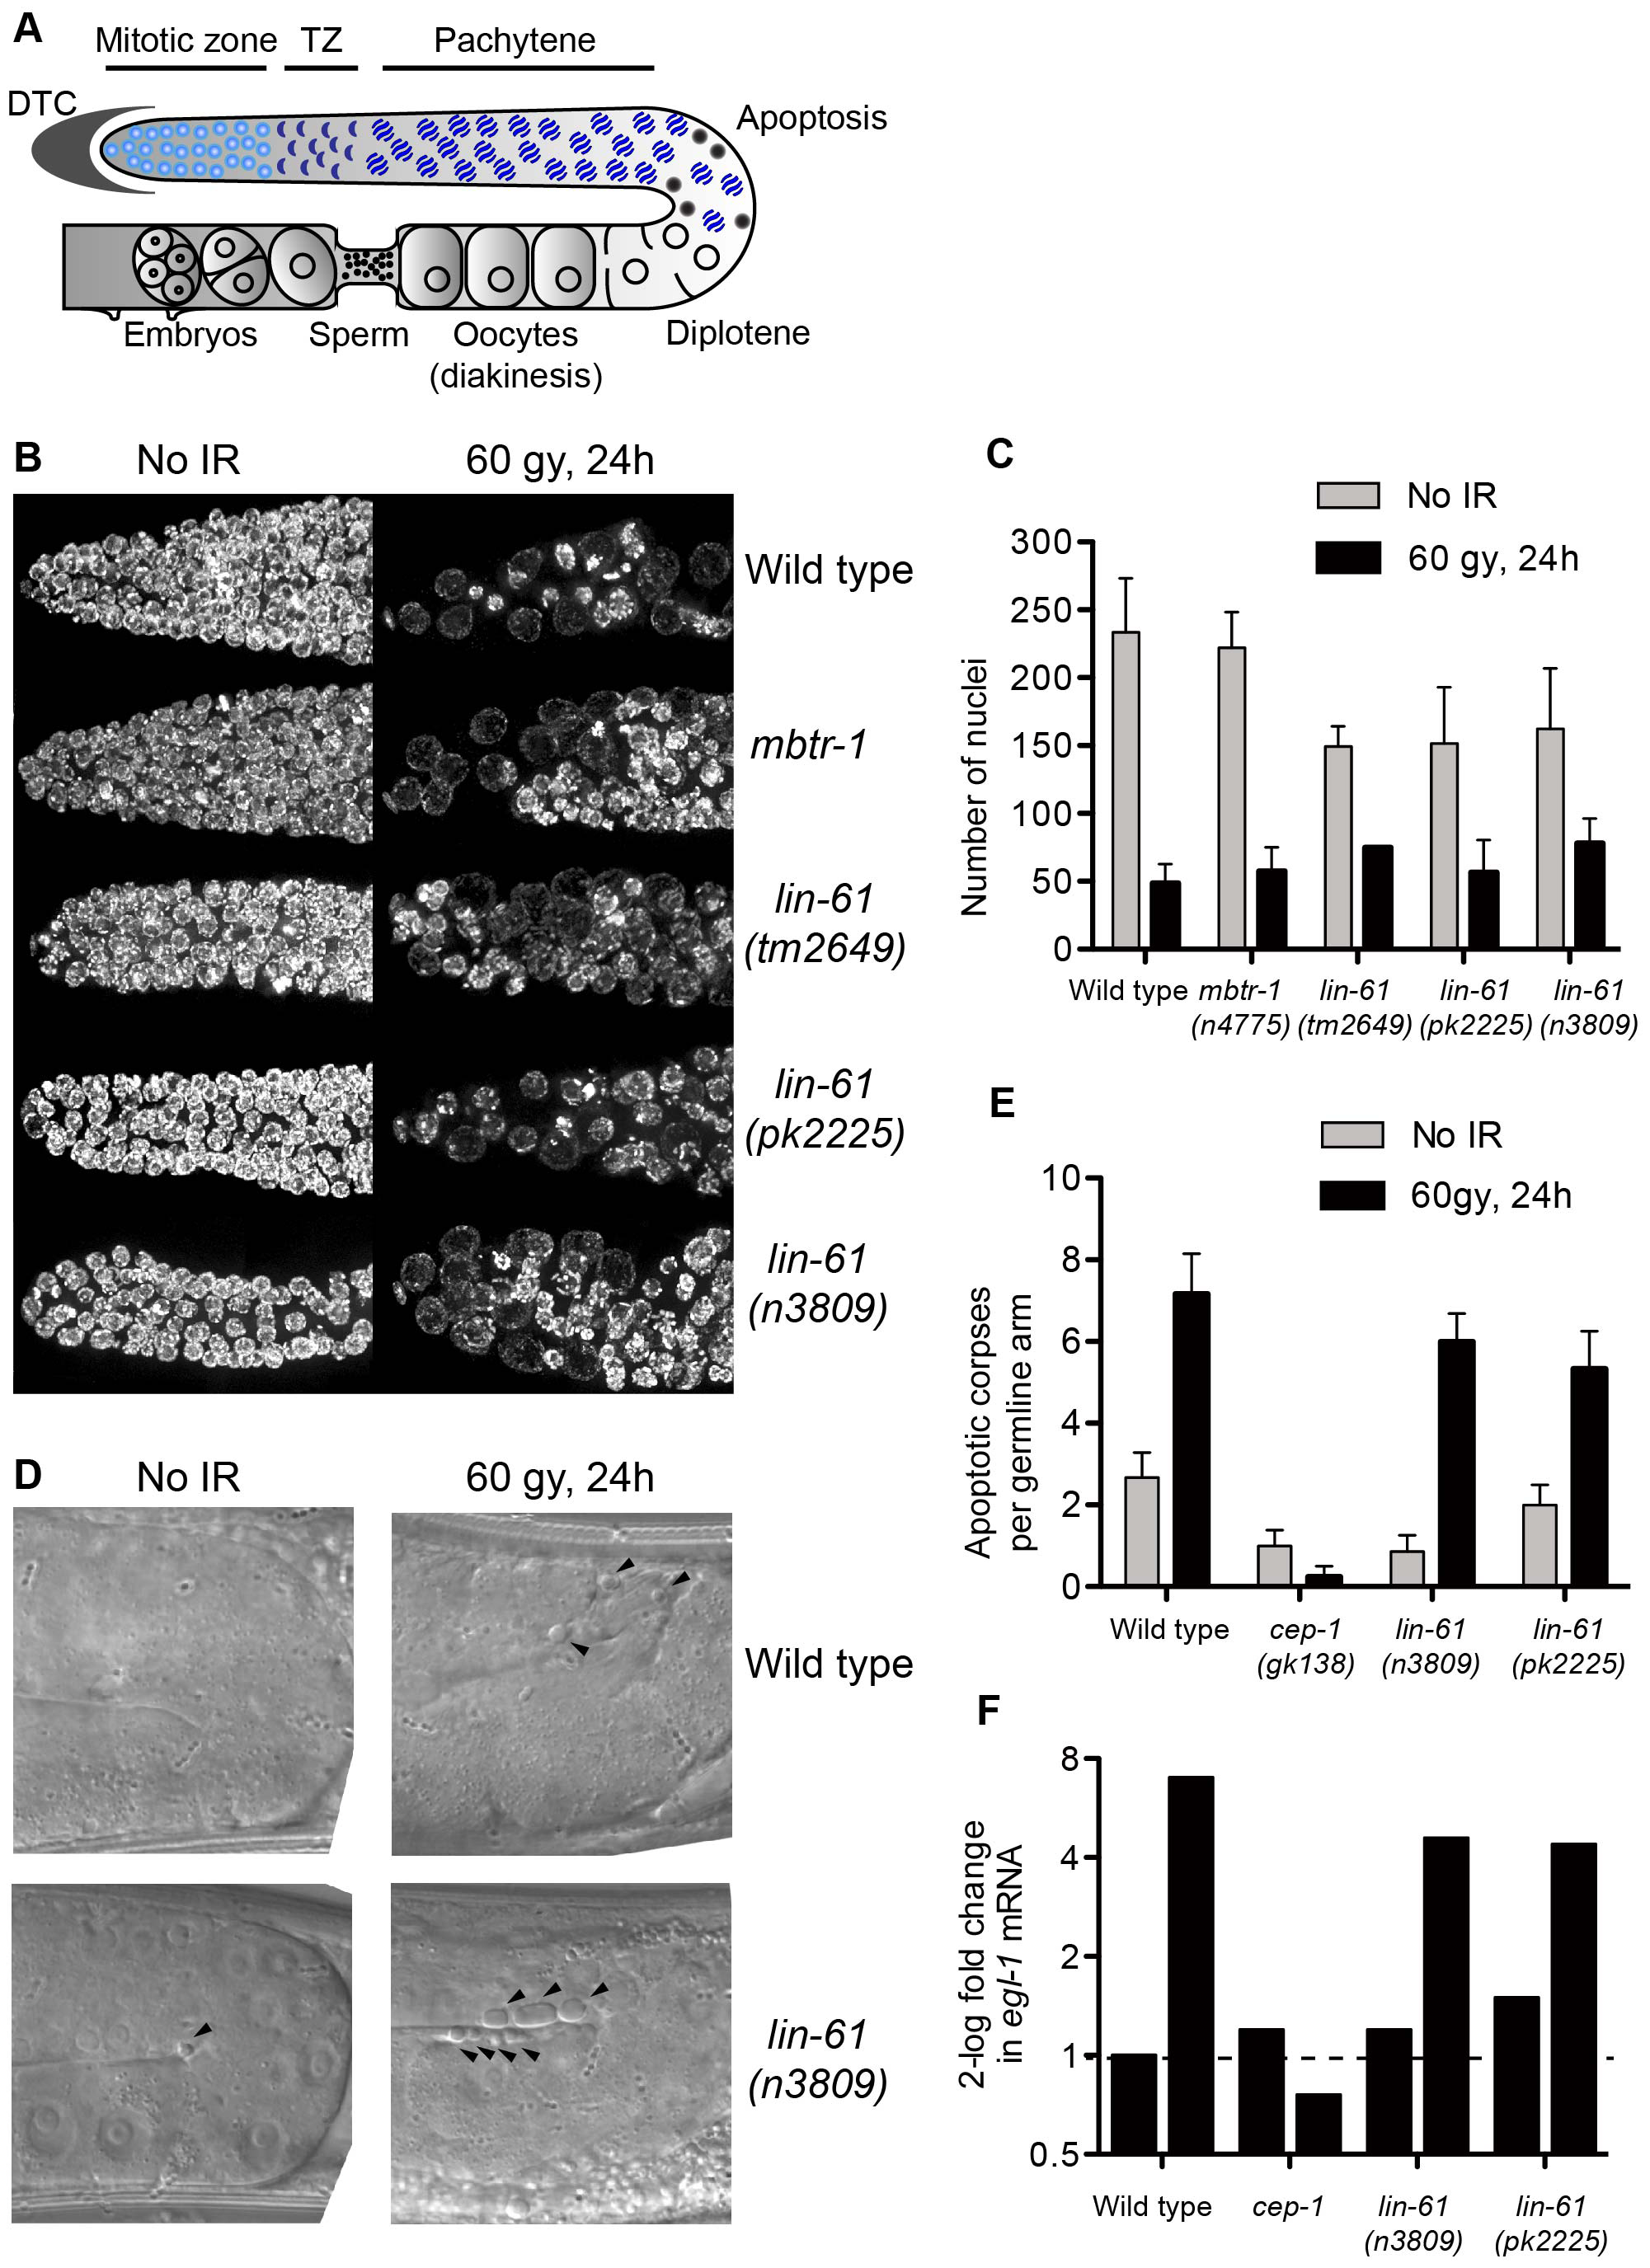 LIN-61 is dispensable for DNA damage checkpoints in the germline.